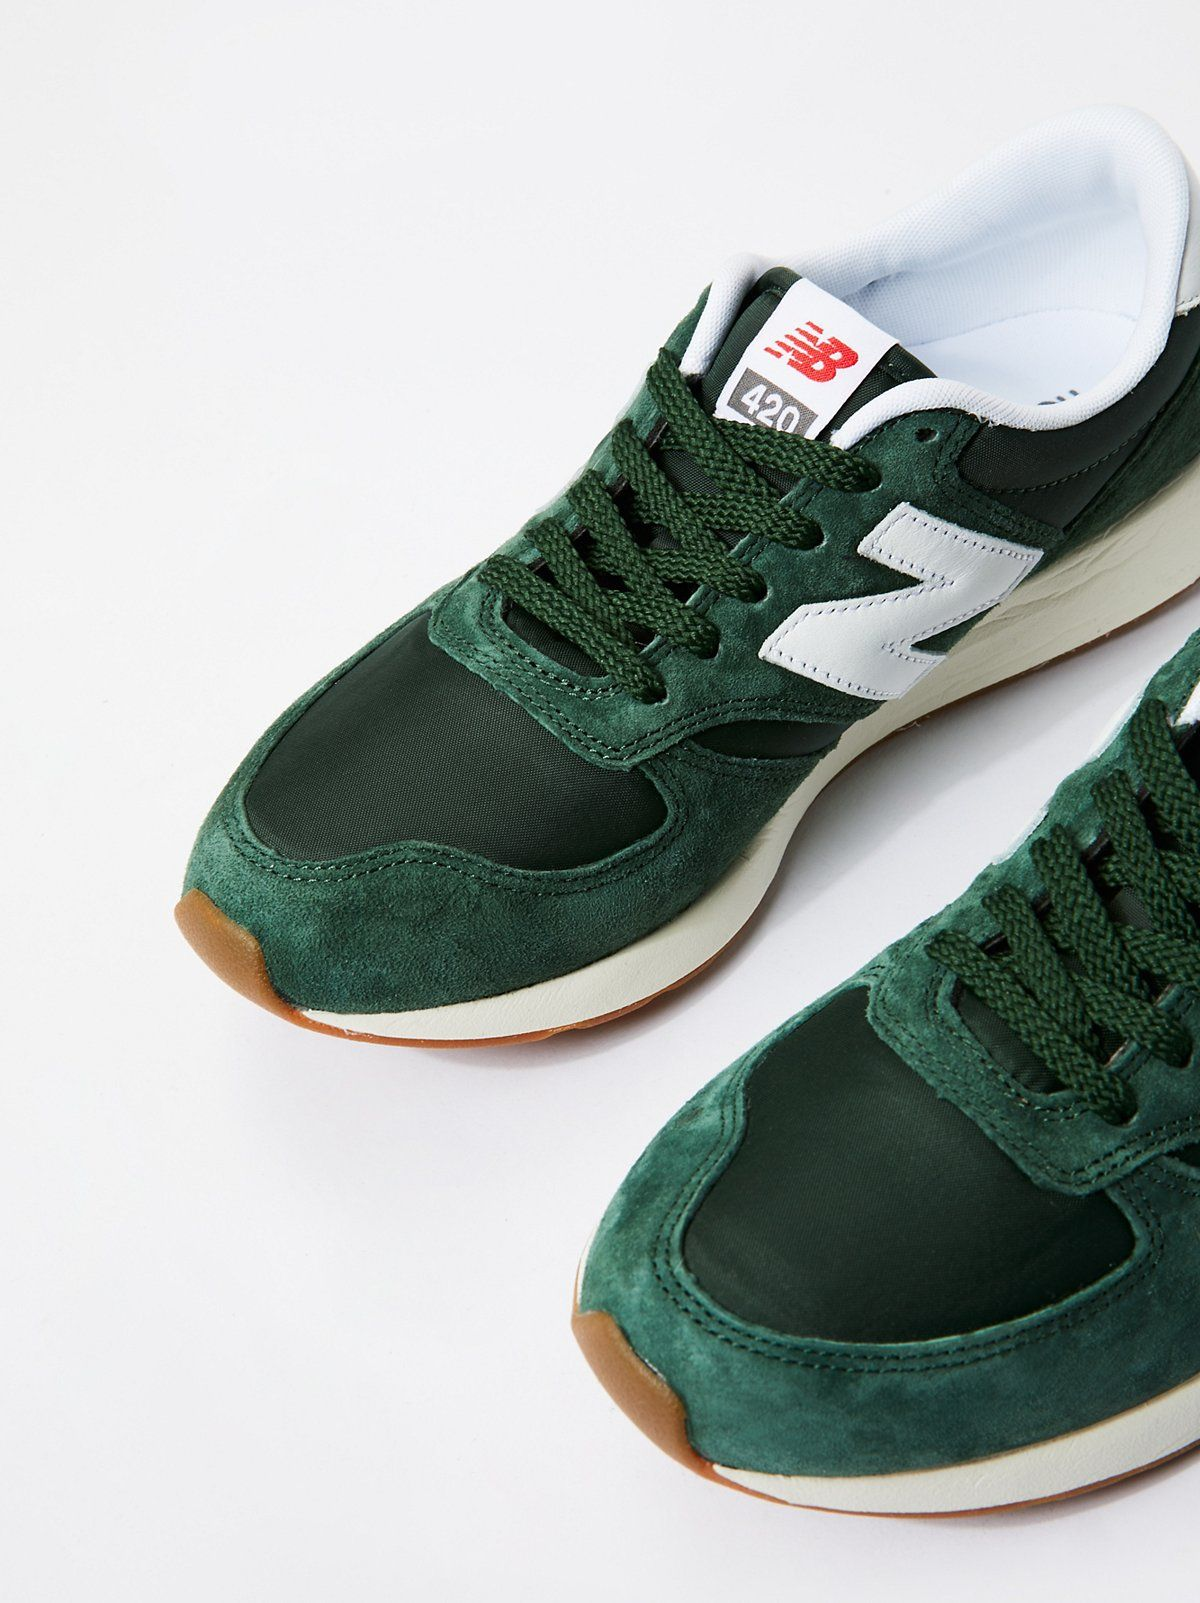 d89141eb43bf4 420 Trainer | A New Balance favorite, these 420 trainers feature a  retro-inspired feel with the classic logo on the sides. * Lightweight EVA  sole for ...